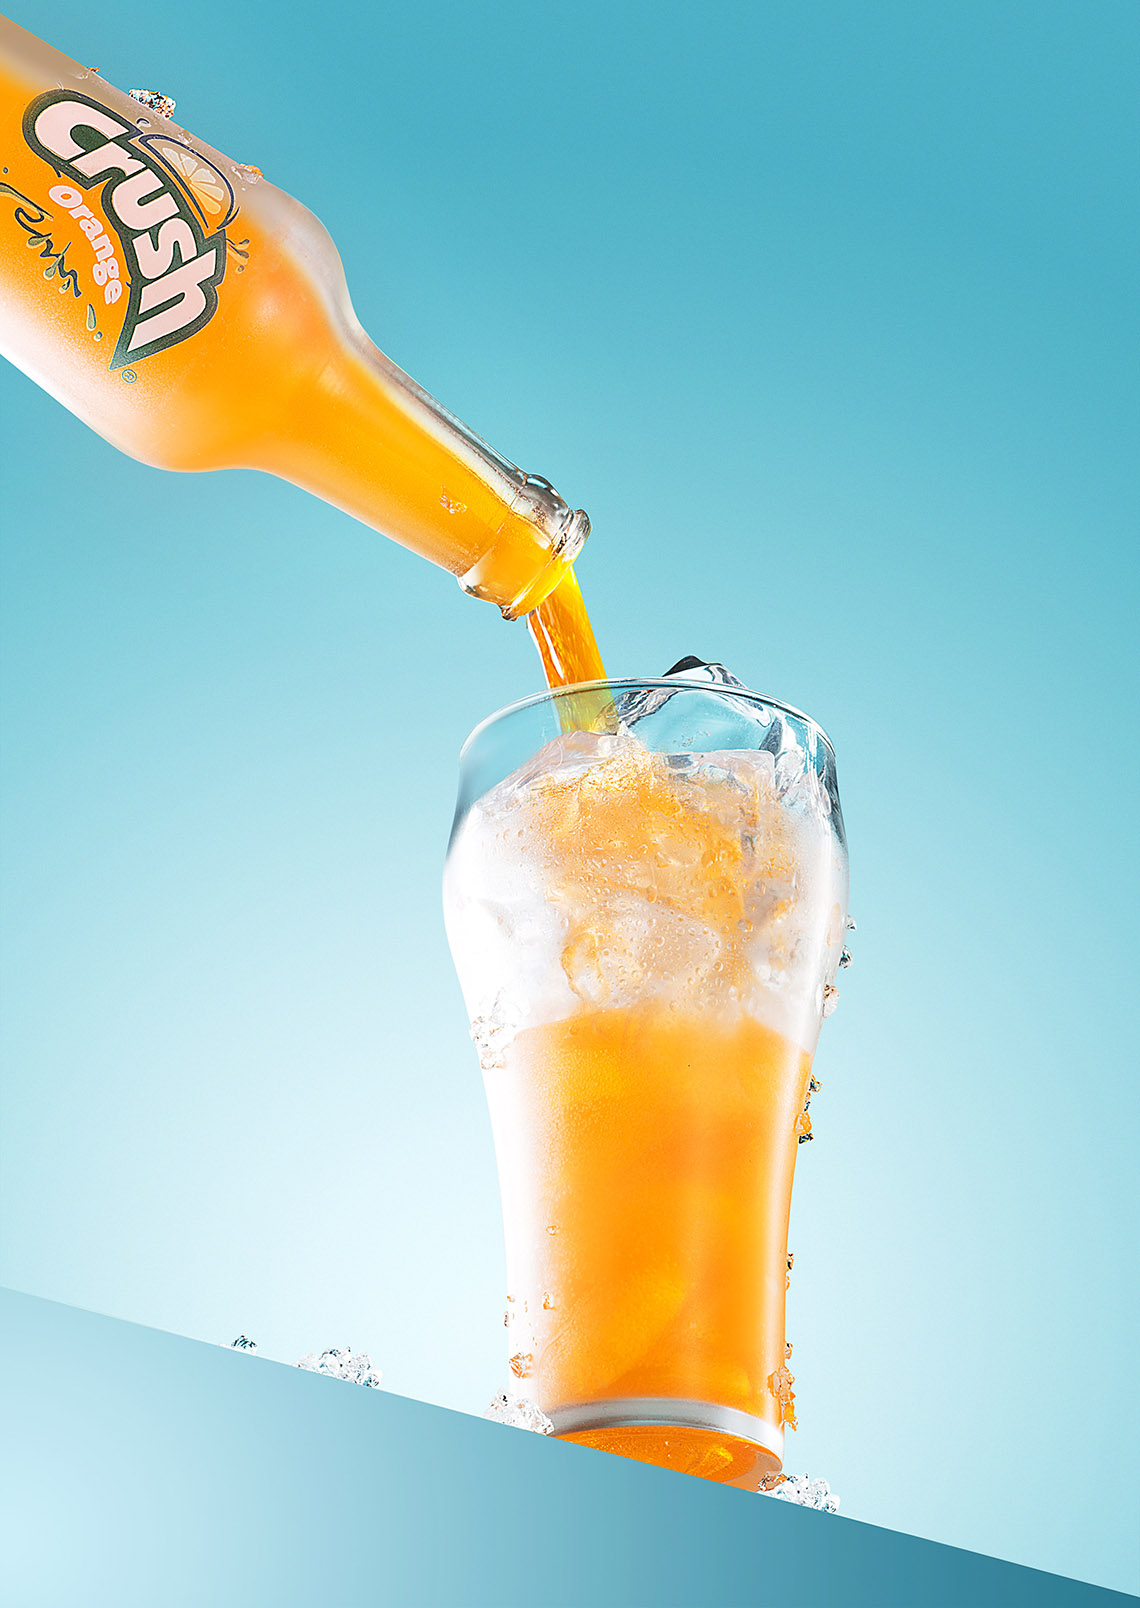 New-york-beverage-liquids-1drink-photography-crush